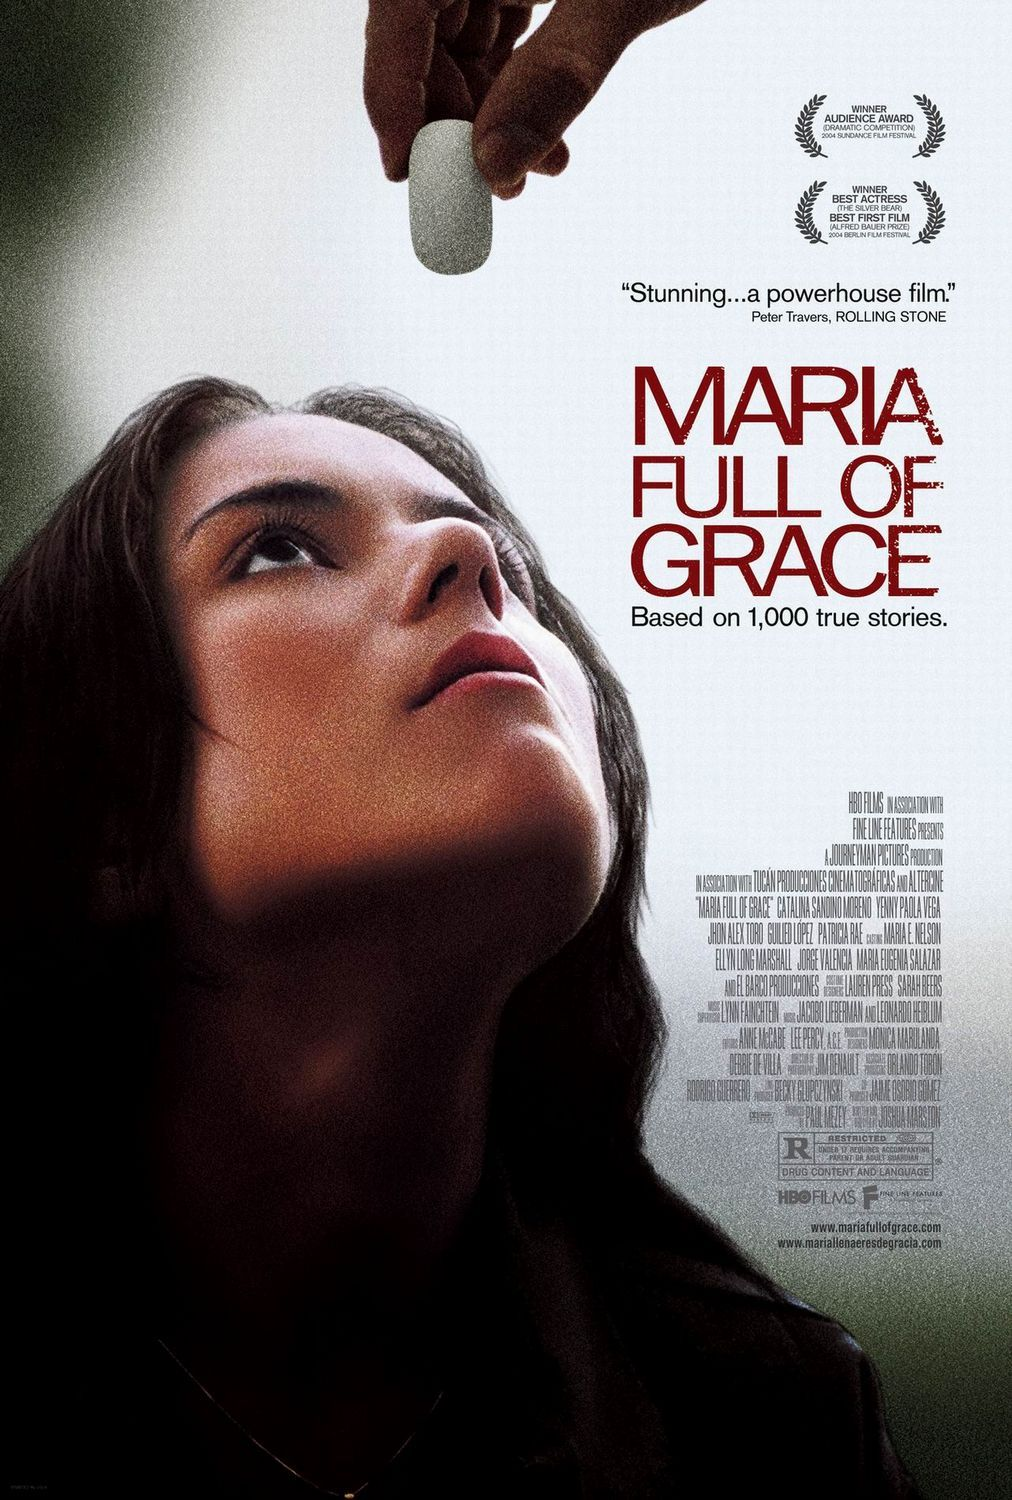 maria full of grace starring catalina sandino moreno guilied maria full of grace starring catalina sandino moreno guilied lopez orlando tobatildesup3n